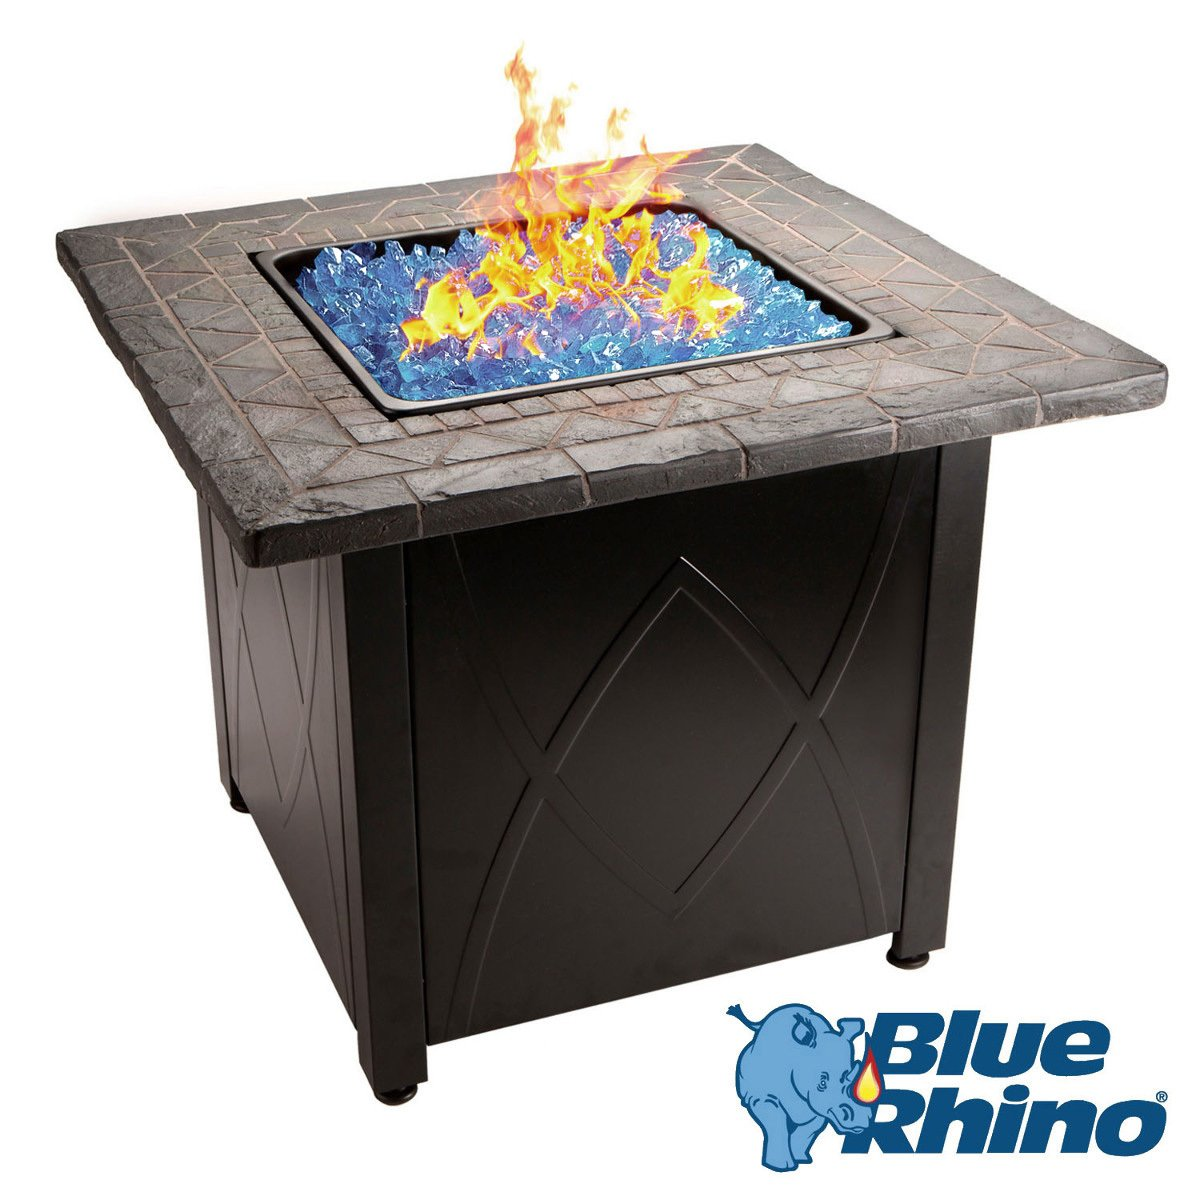 Cheap Propane Gas Fire Pit Tables Under 200 Outdoor